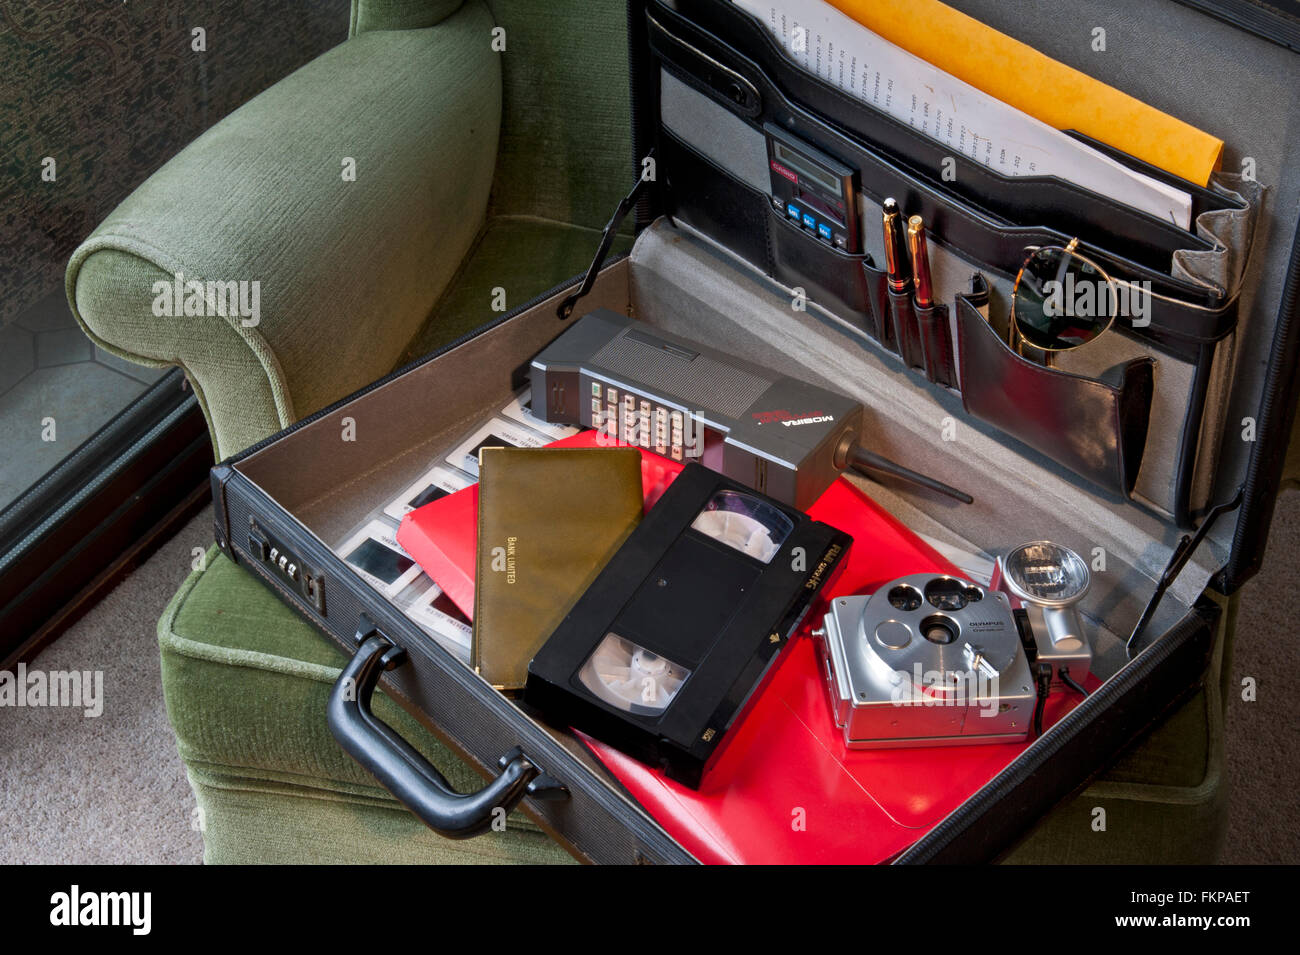 Briefcase with typical 1980's items including Mobira Cityman mobile phone, VHS video cassette, 35mm film camera, - Stock Image